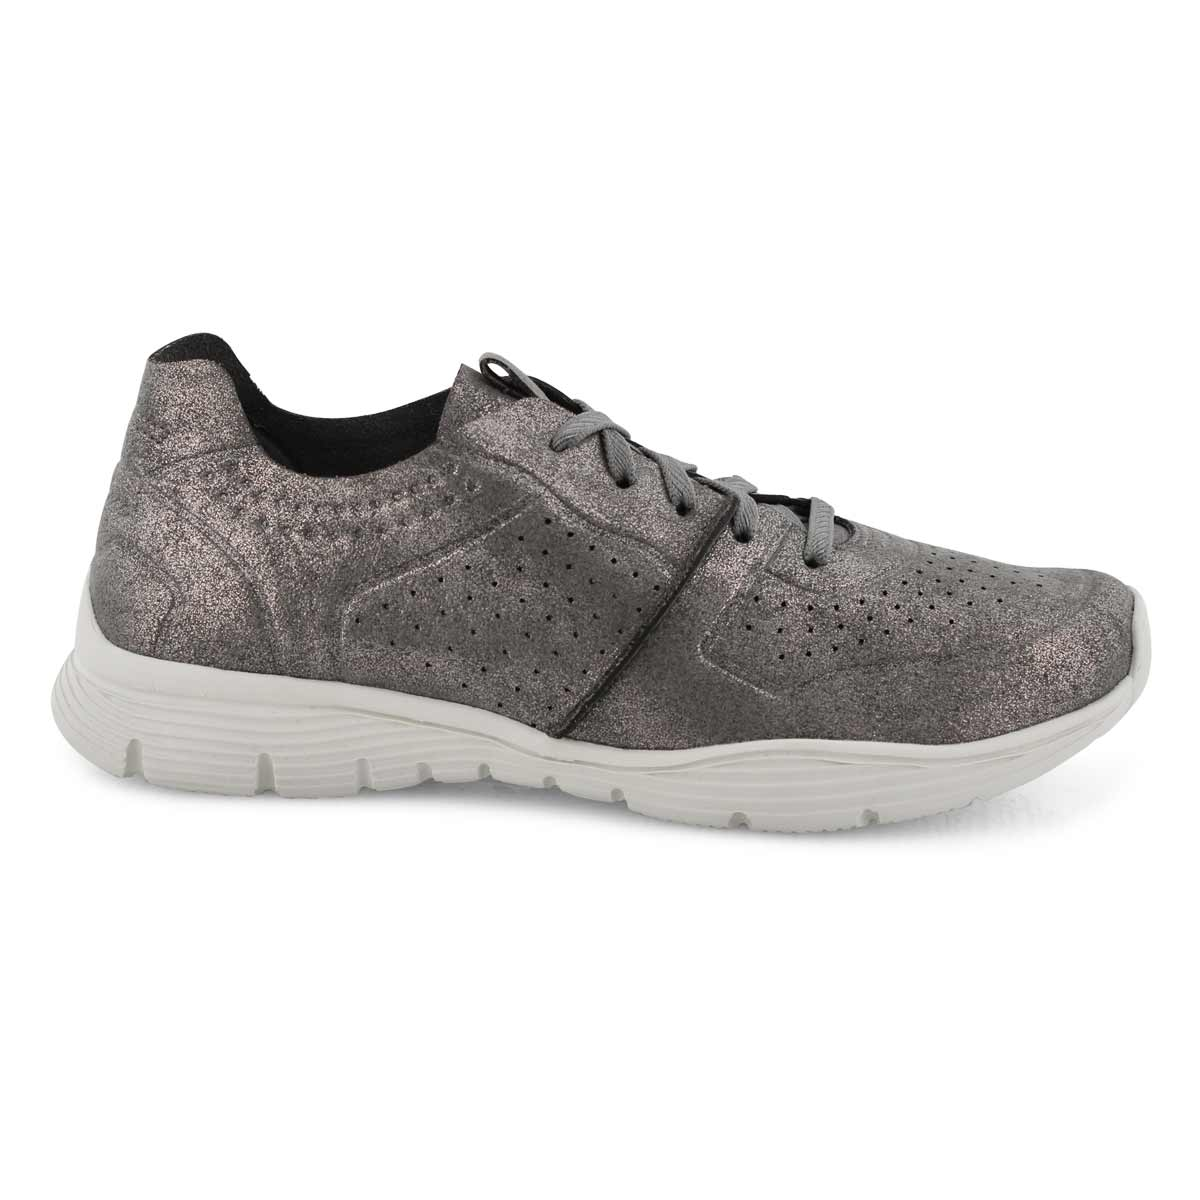 Lds Seager Major League gunmetal sneaker